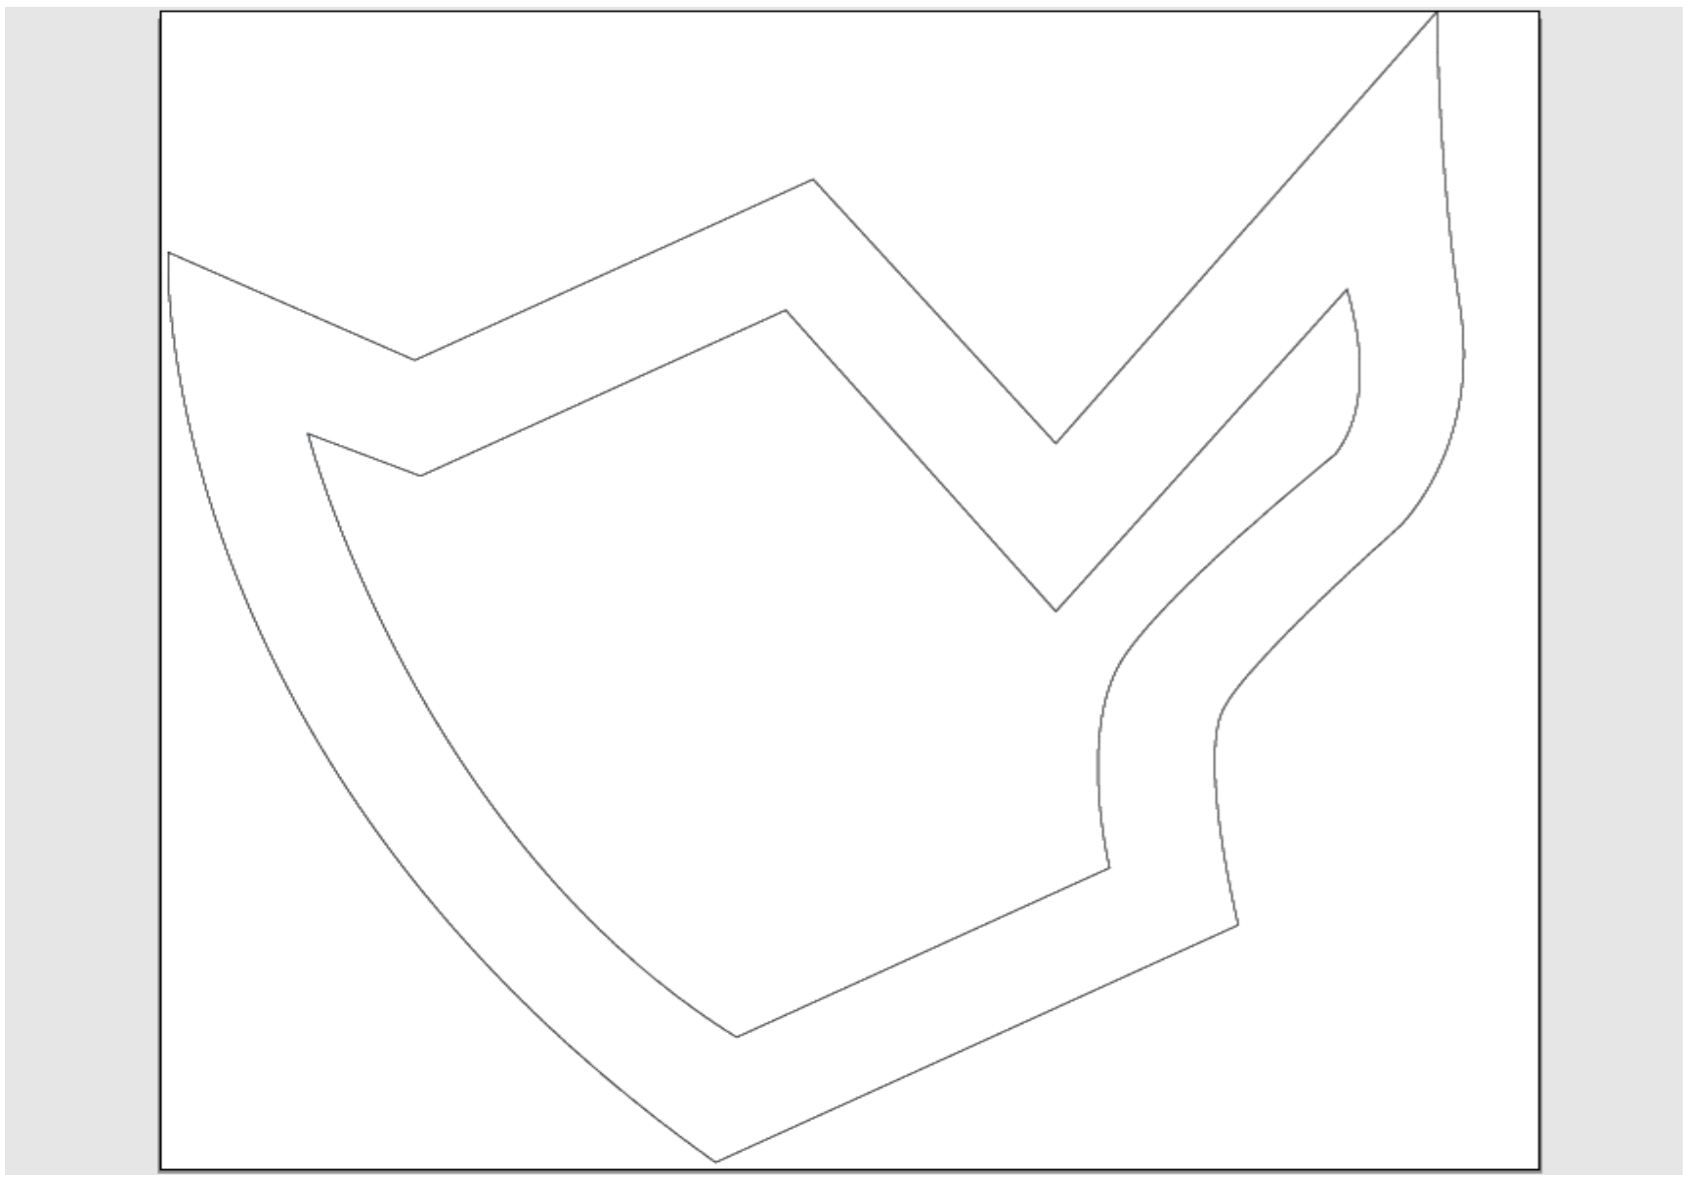 EvoShape, taken from the same generation as the shape above. Translated via drawing into Illustrator to be used as a template by the Water Jet Cutter.